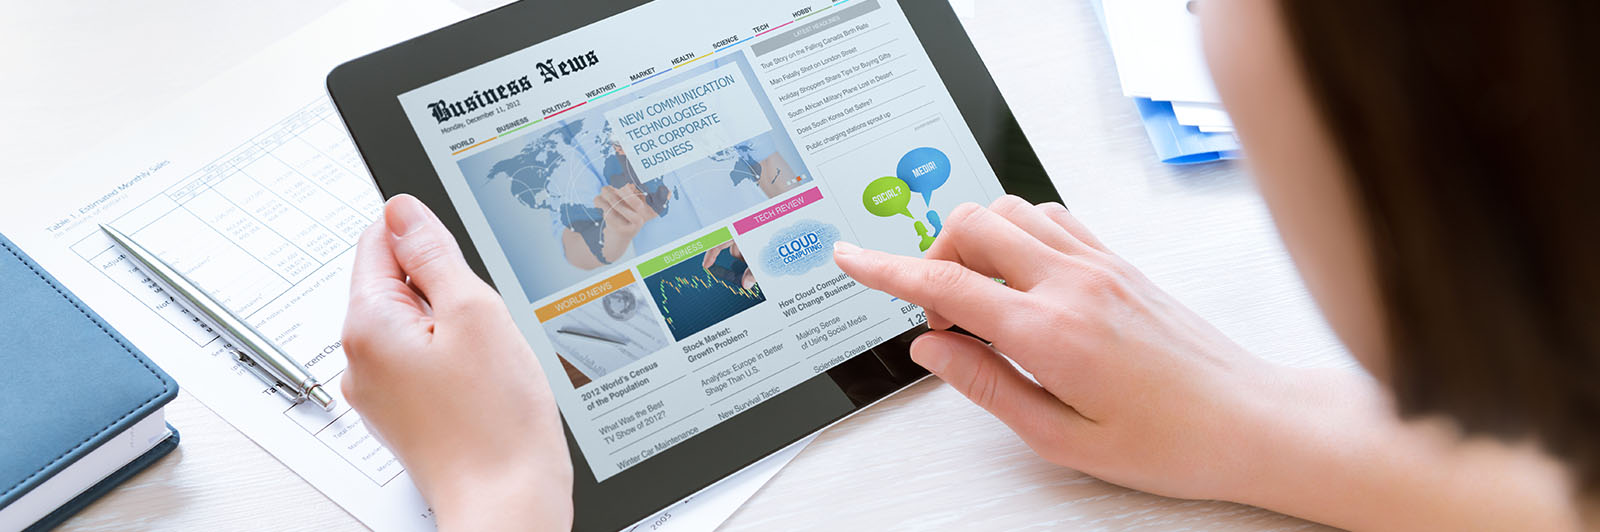 tablet with Business news on screen